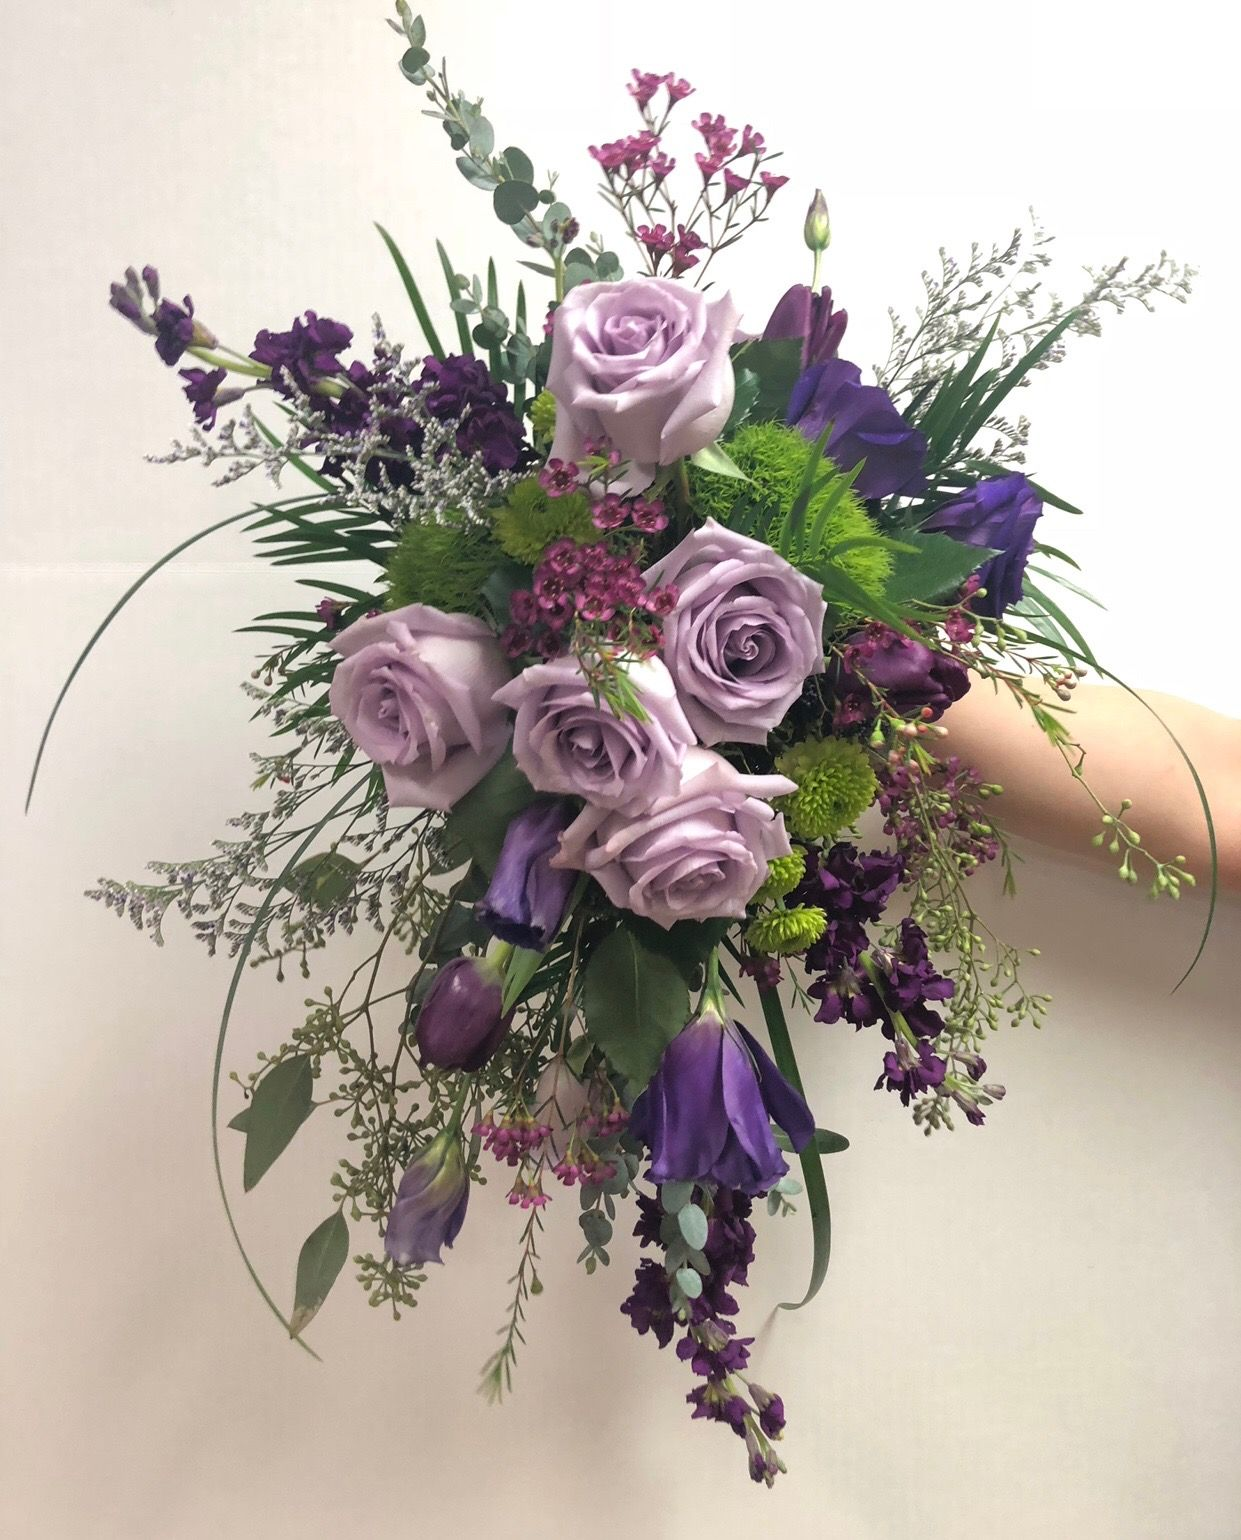 Twigs Vines Original Design Cascade Style Bouquet Made In An Oasis Bouquet Holder Groupings Of Lavender Roses Pur Wax Flowers Lavender Roses Bouquet Holder